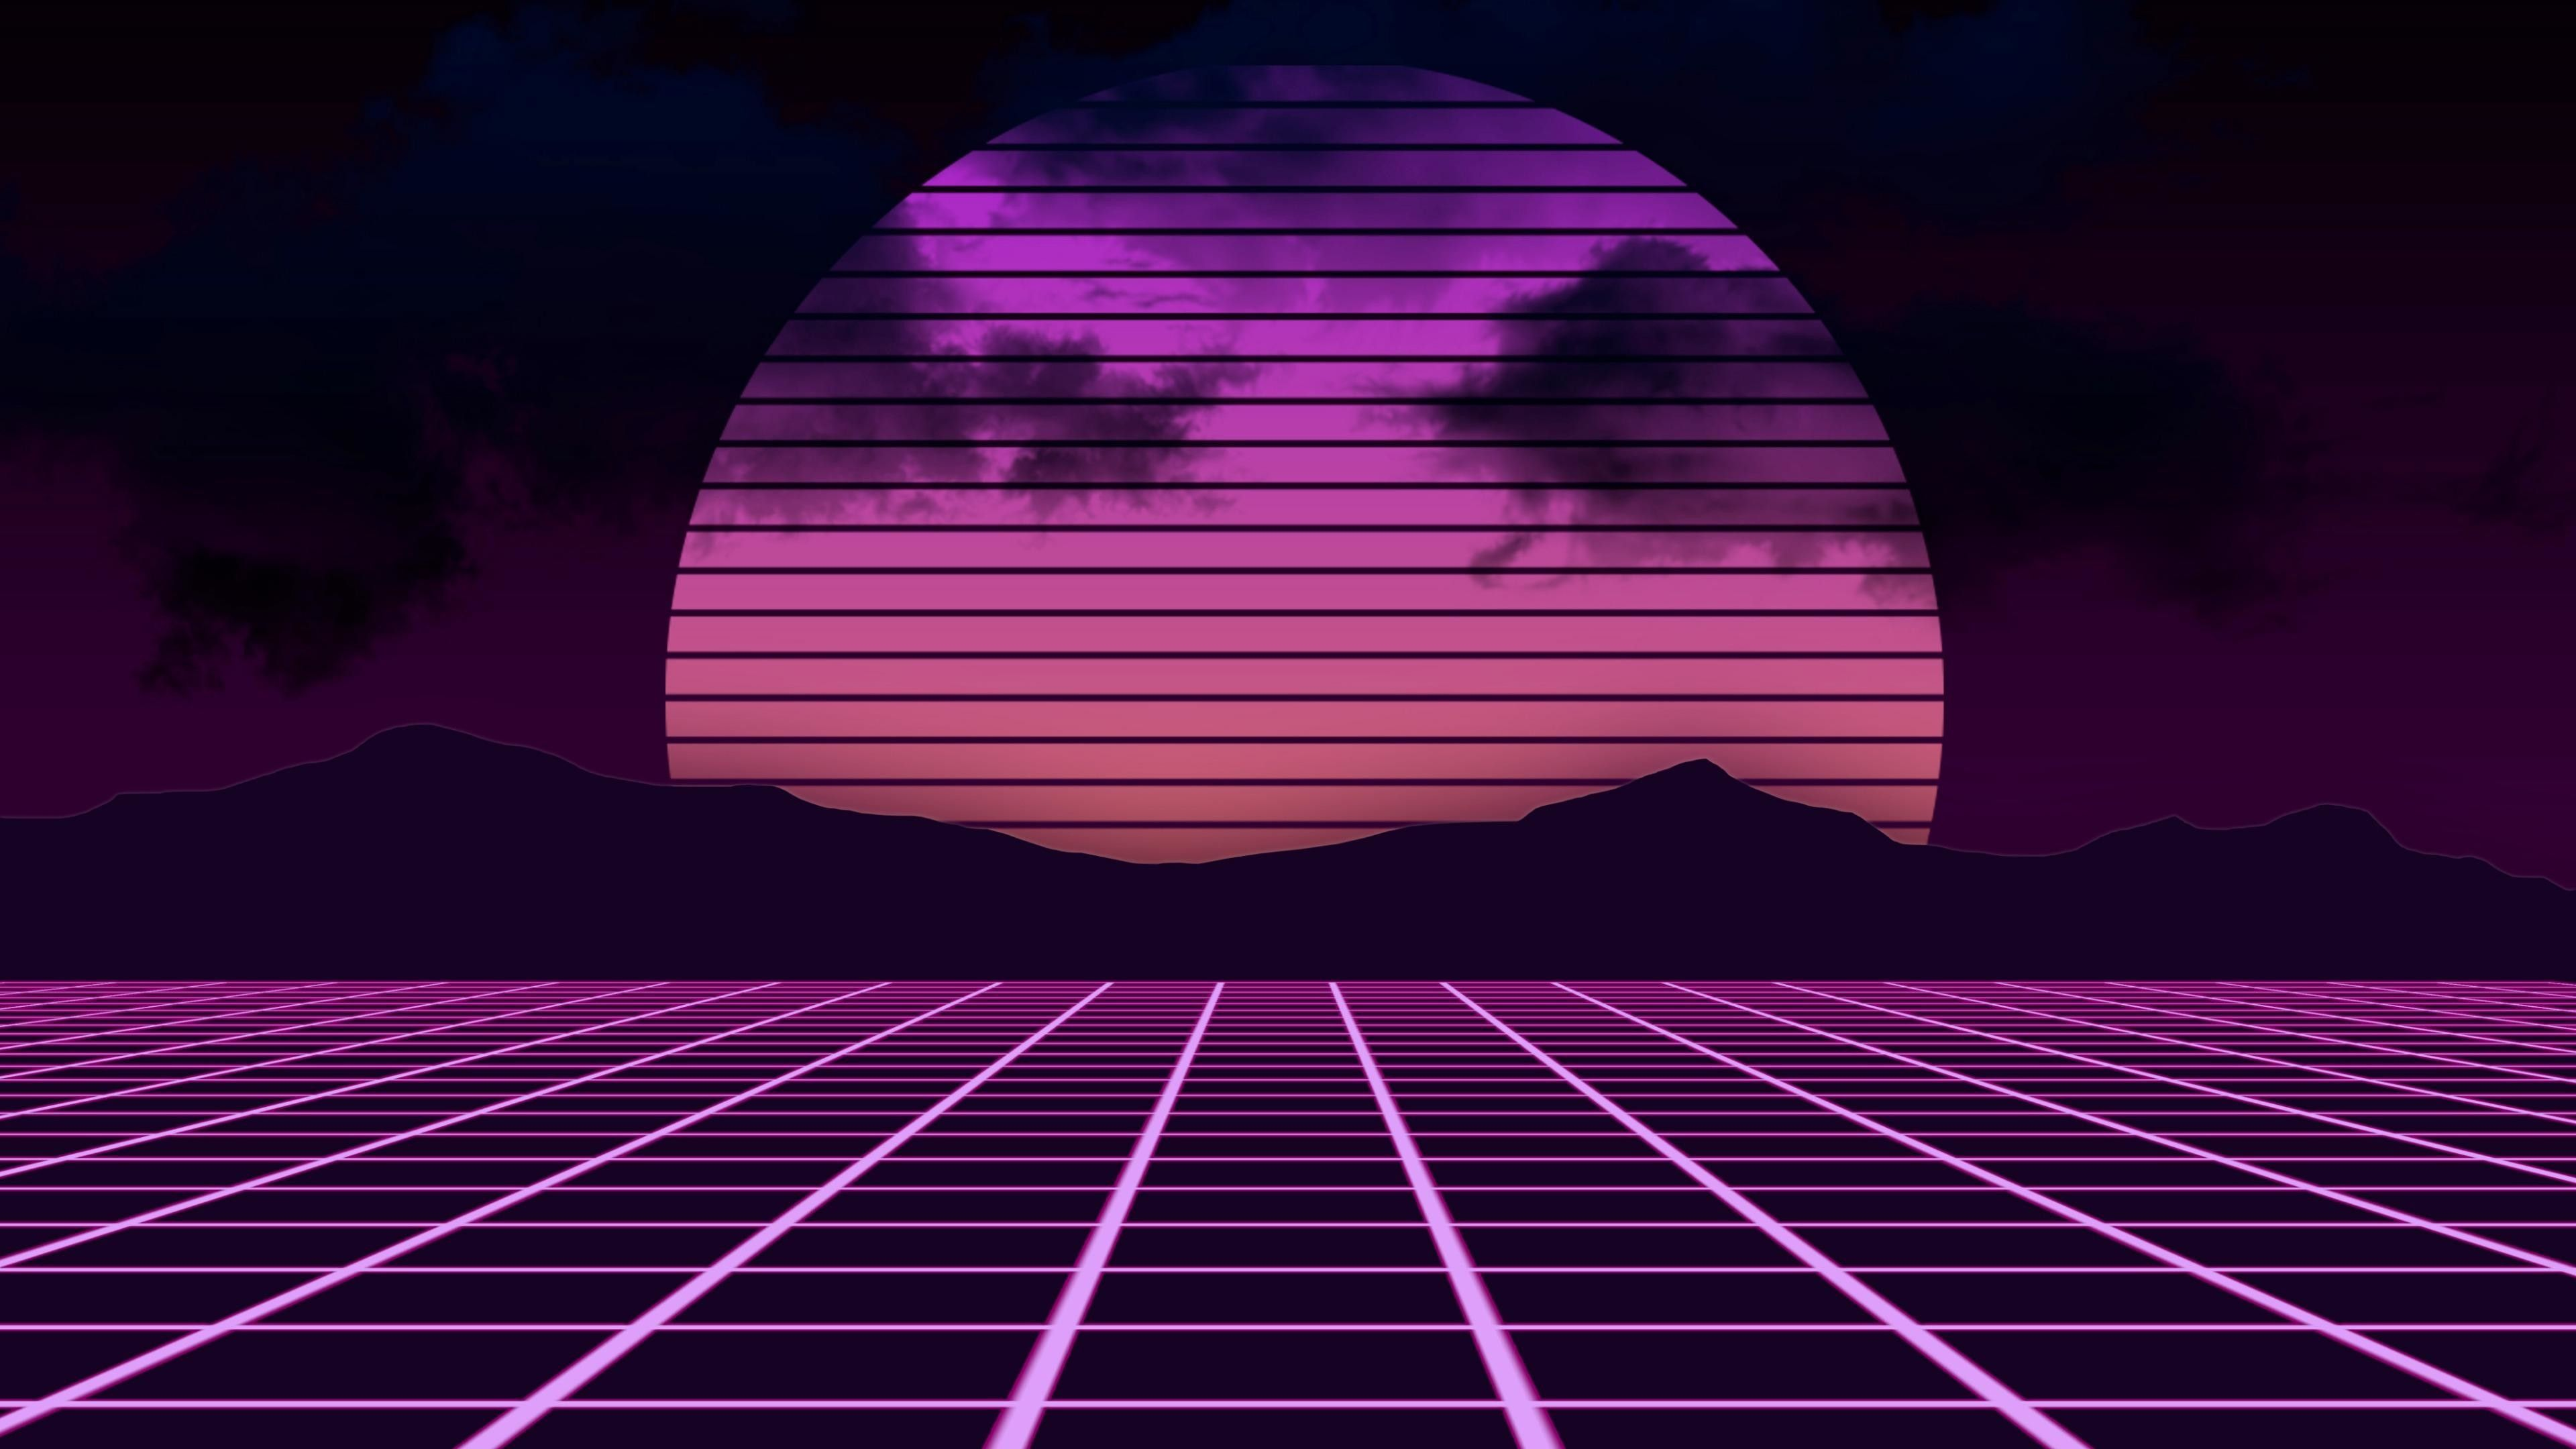 Res X Retrowave Abstract Neon Landscape Wallpaper Wallpaper Studio  Tens Of Thousands Hd And Ultrahd Wallpapers For Android